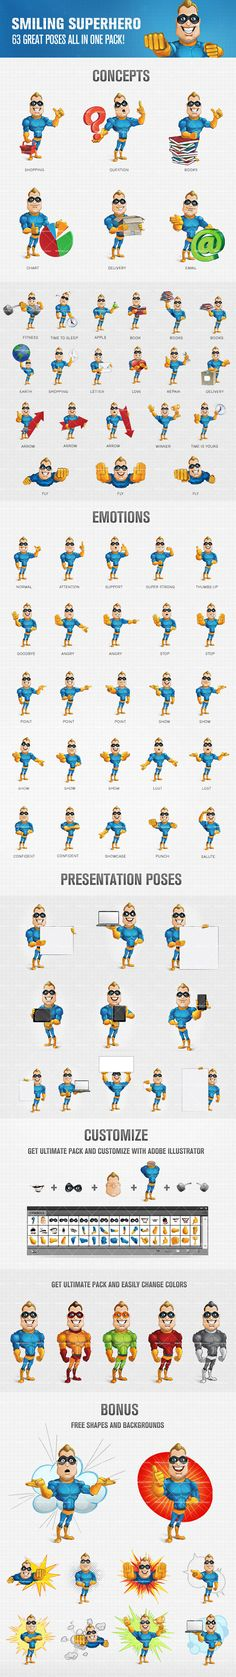 Smiling superhero cartoon character designed with perfection in every pixel. We have created 63 different poses and moods that will suit a wide range of projects. Continue reading →